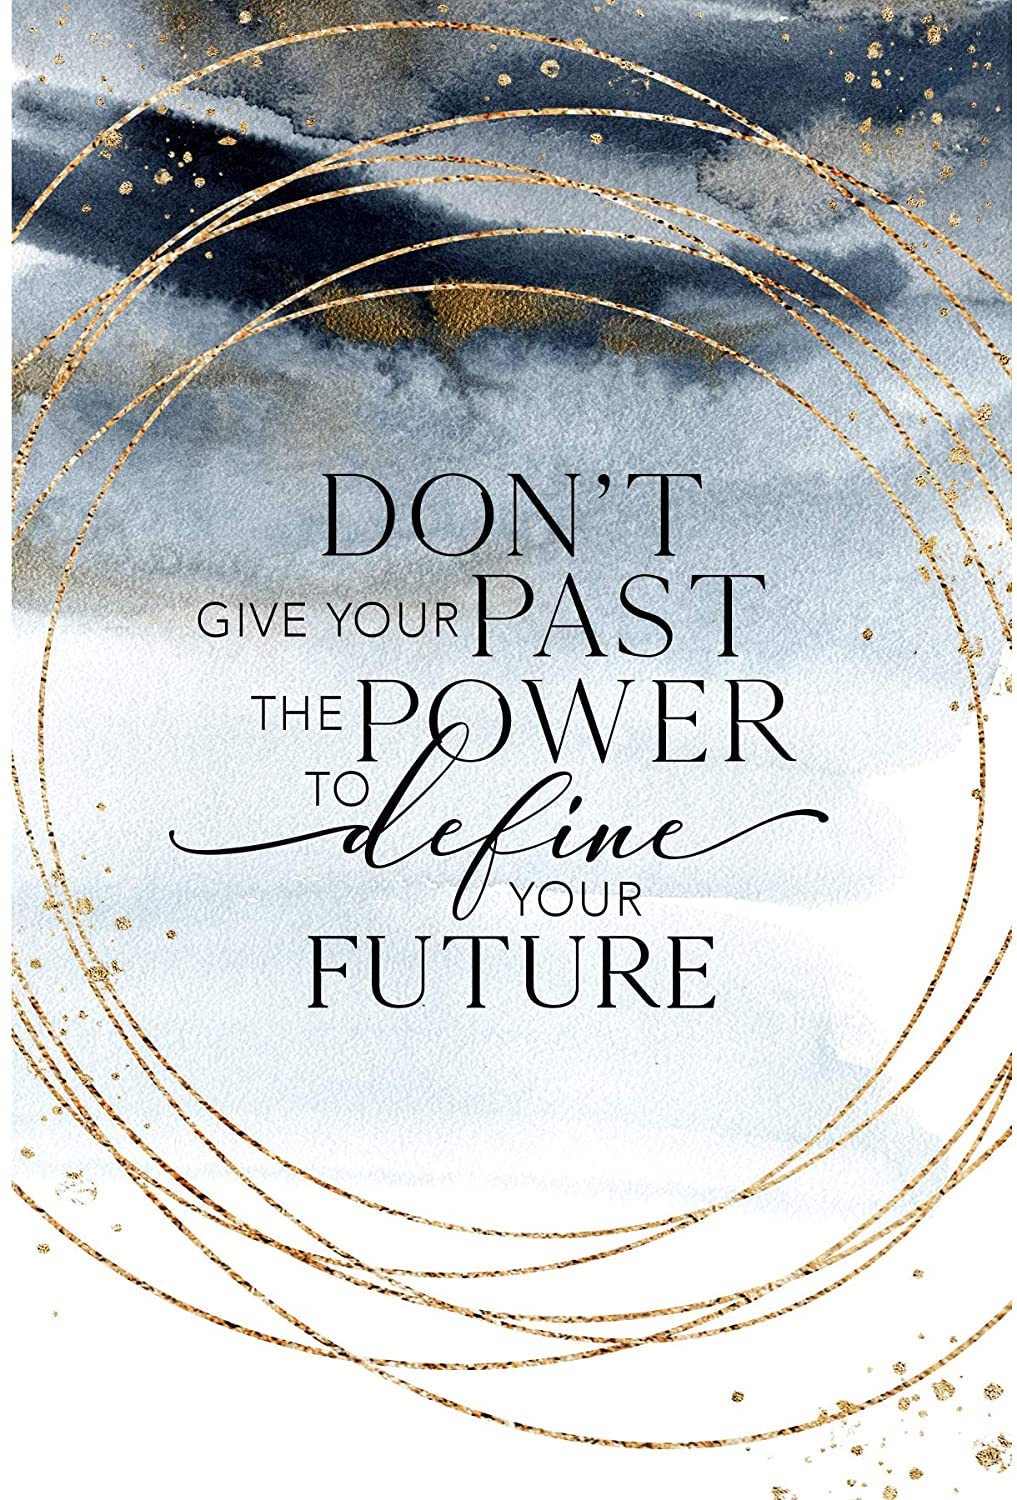 Wood Plaque with Inspiring Quotes 6 inches x 9 inches - Elegant Vertical Frame Wall & Tabletop Decoration | Easel & Hanging Hook | Don't give Your Past The Power to Define Your Future